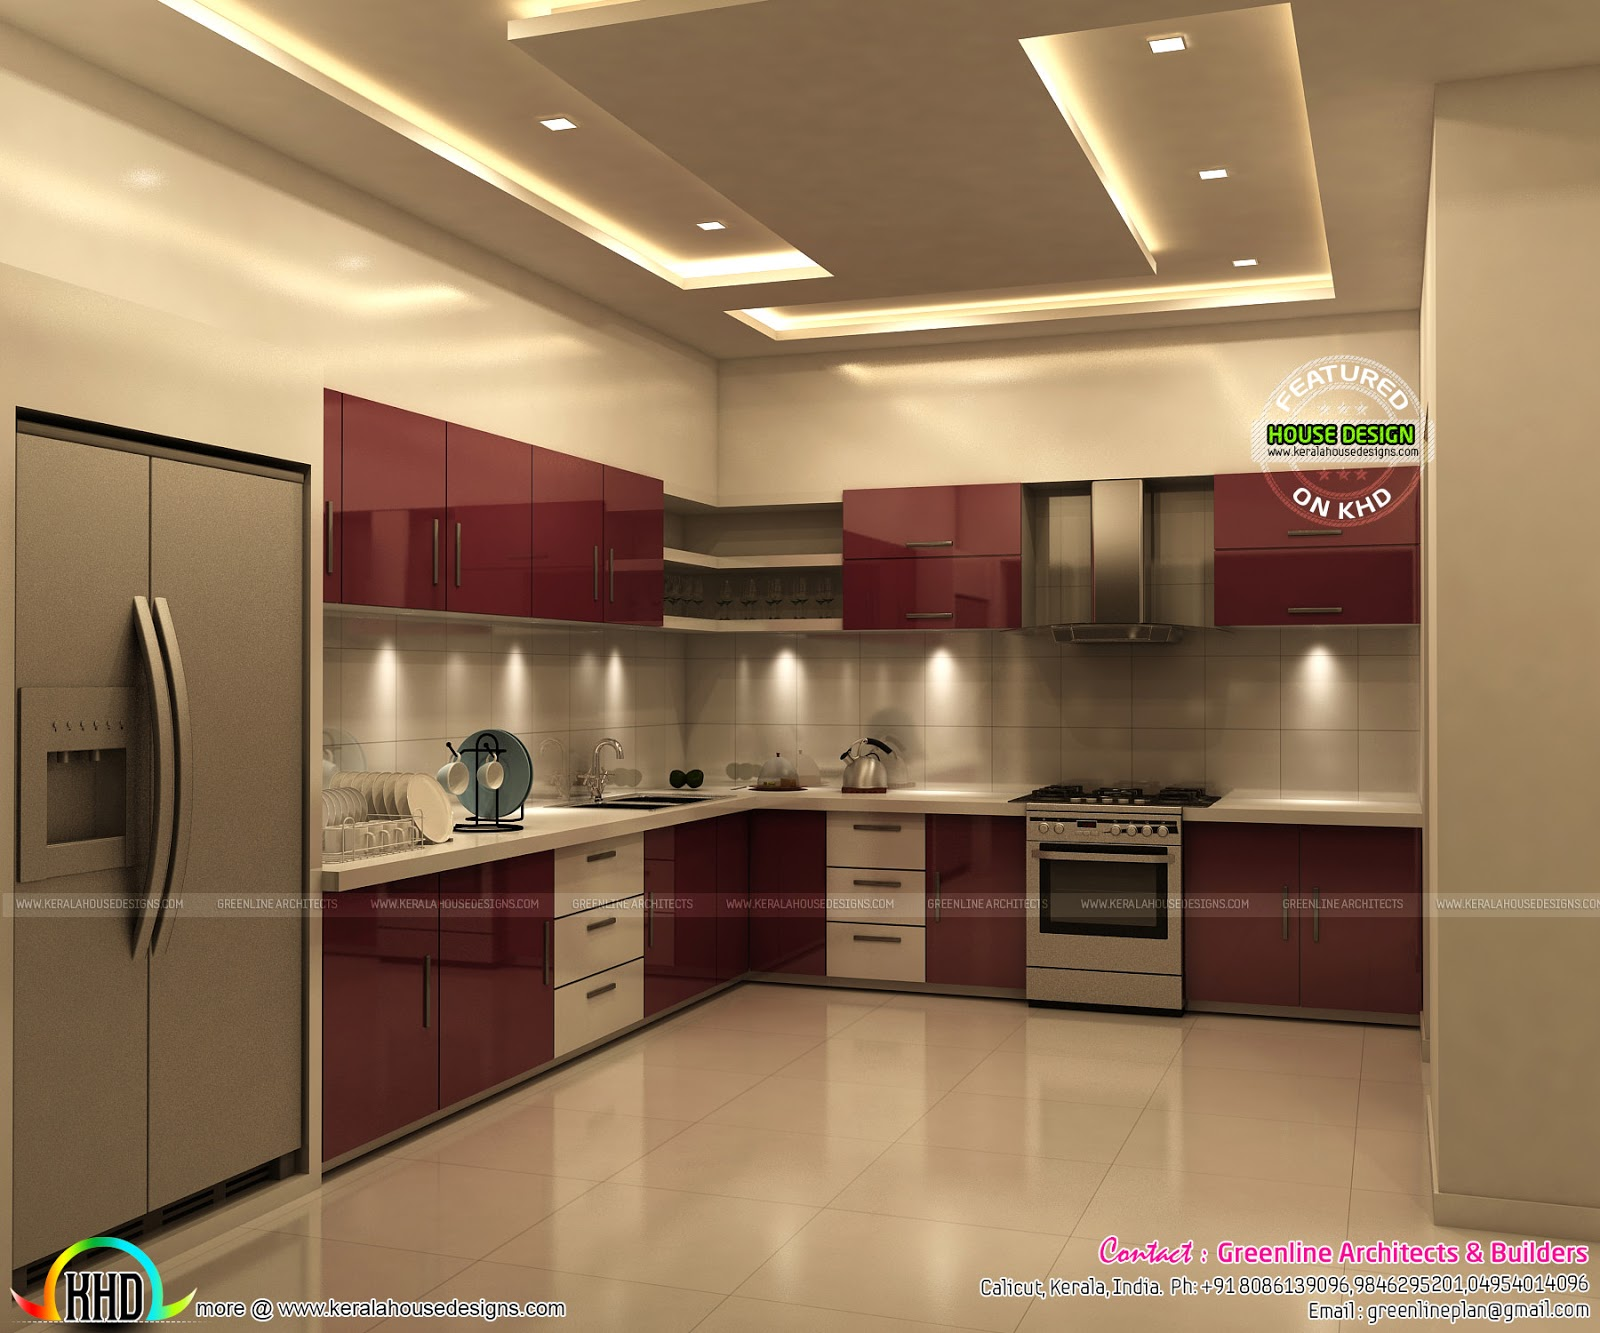 Superb kitchen and bedroom interiors kerala home design for Interior designs of the house